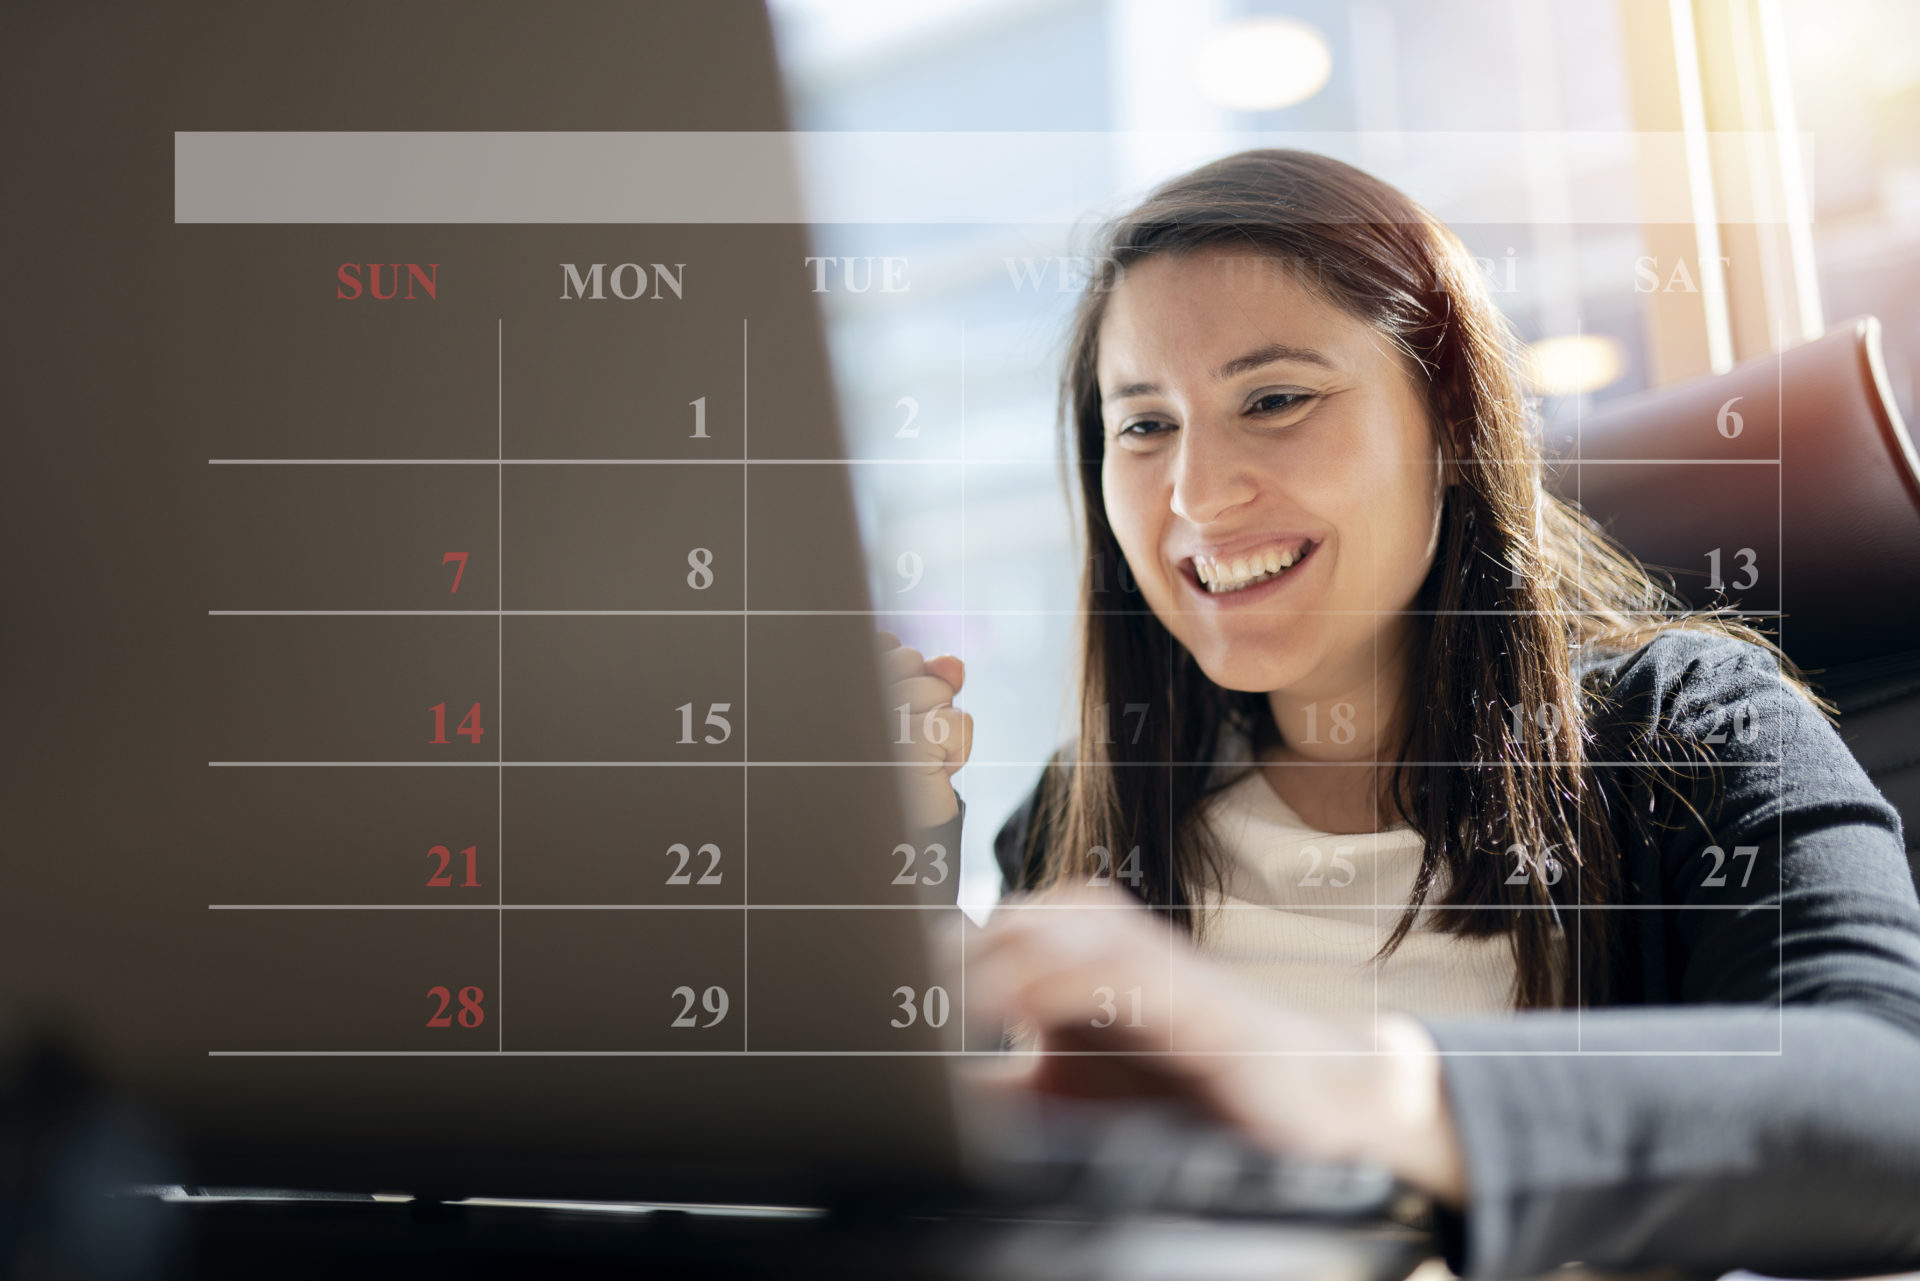 Calendar and business people